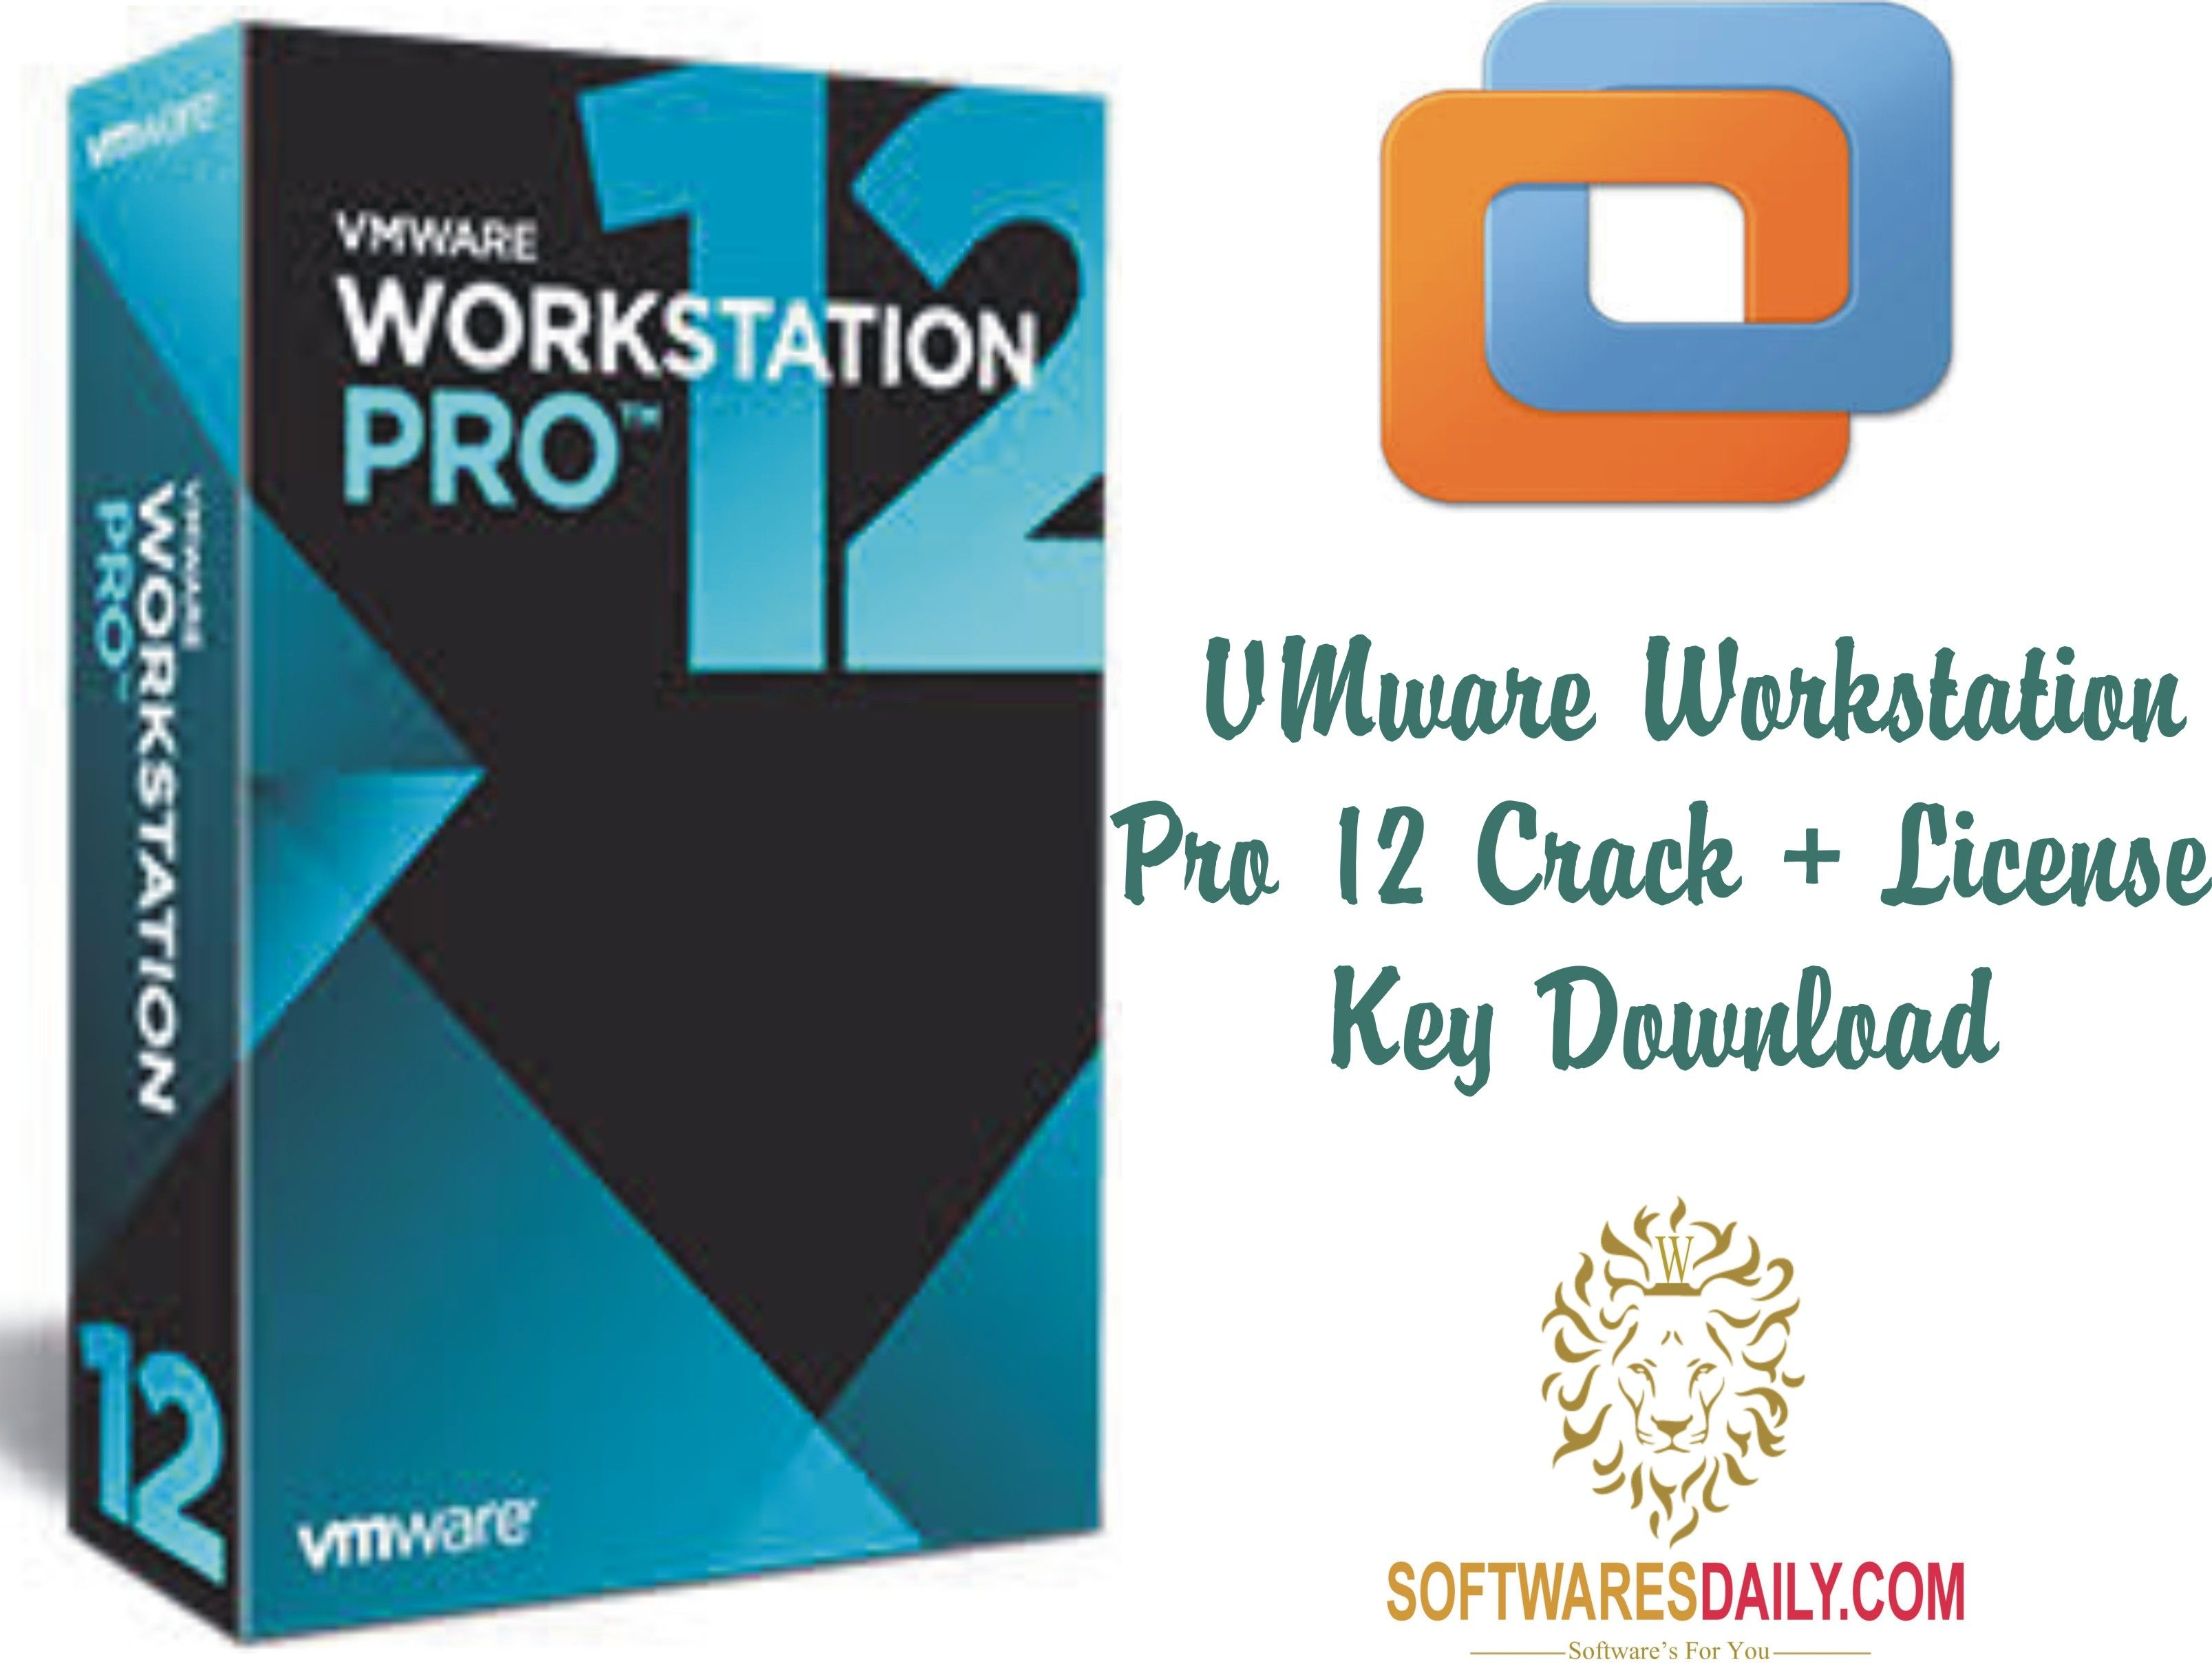 vmware workstation 7 keygen free download